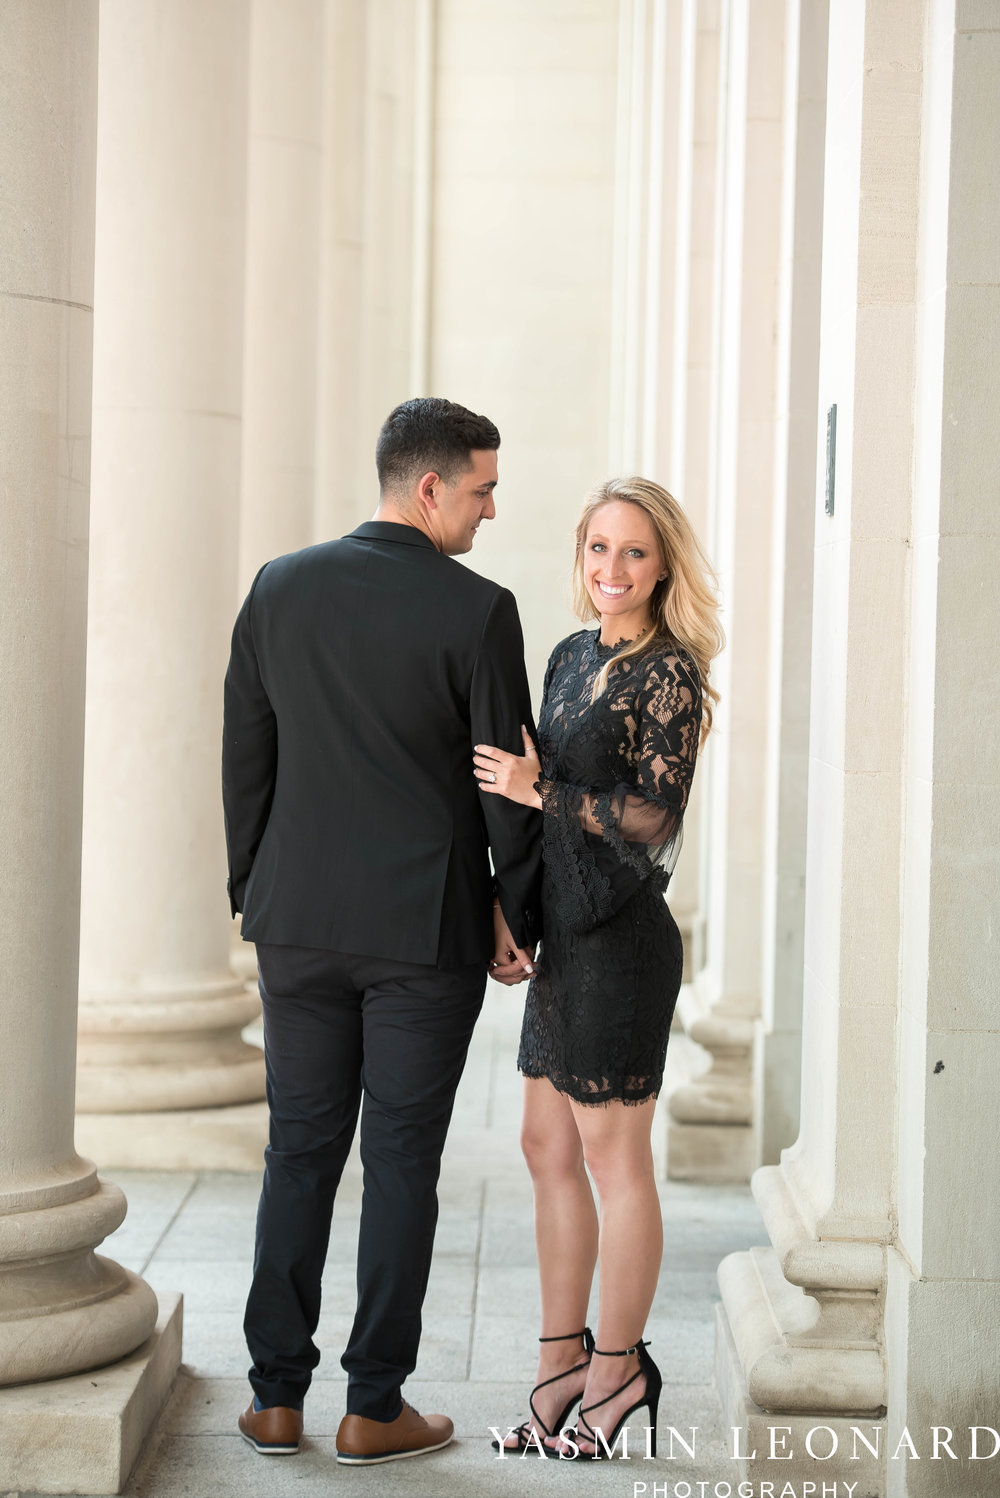 Downtown Winston Salem Engagement Session - NC Engaged - NC Weddings - Winston Salem Weddings - Yasmin Leonard Photography-22.jpg